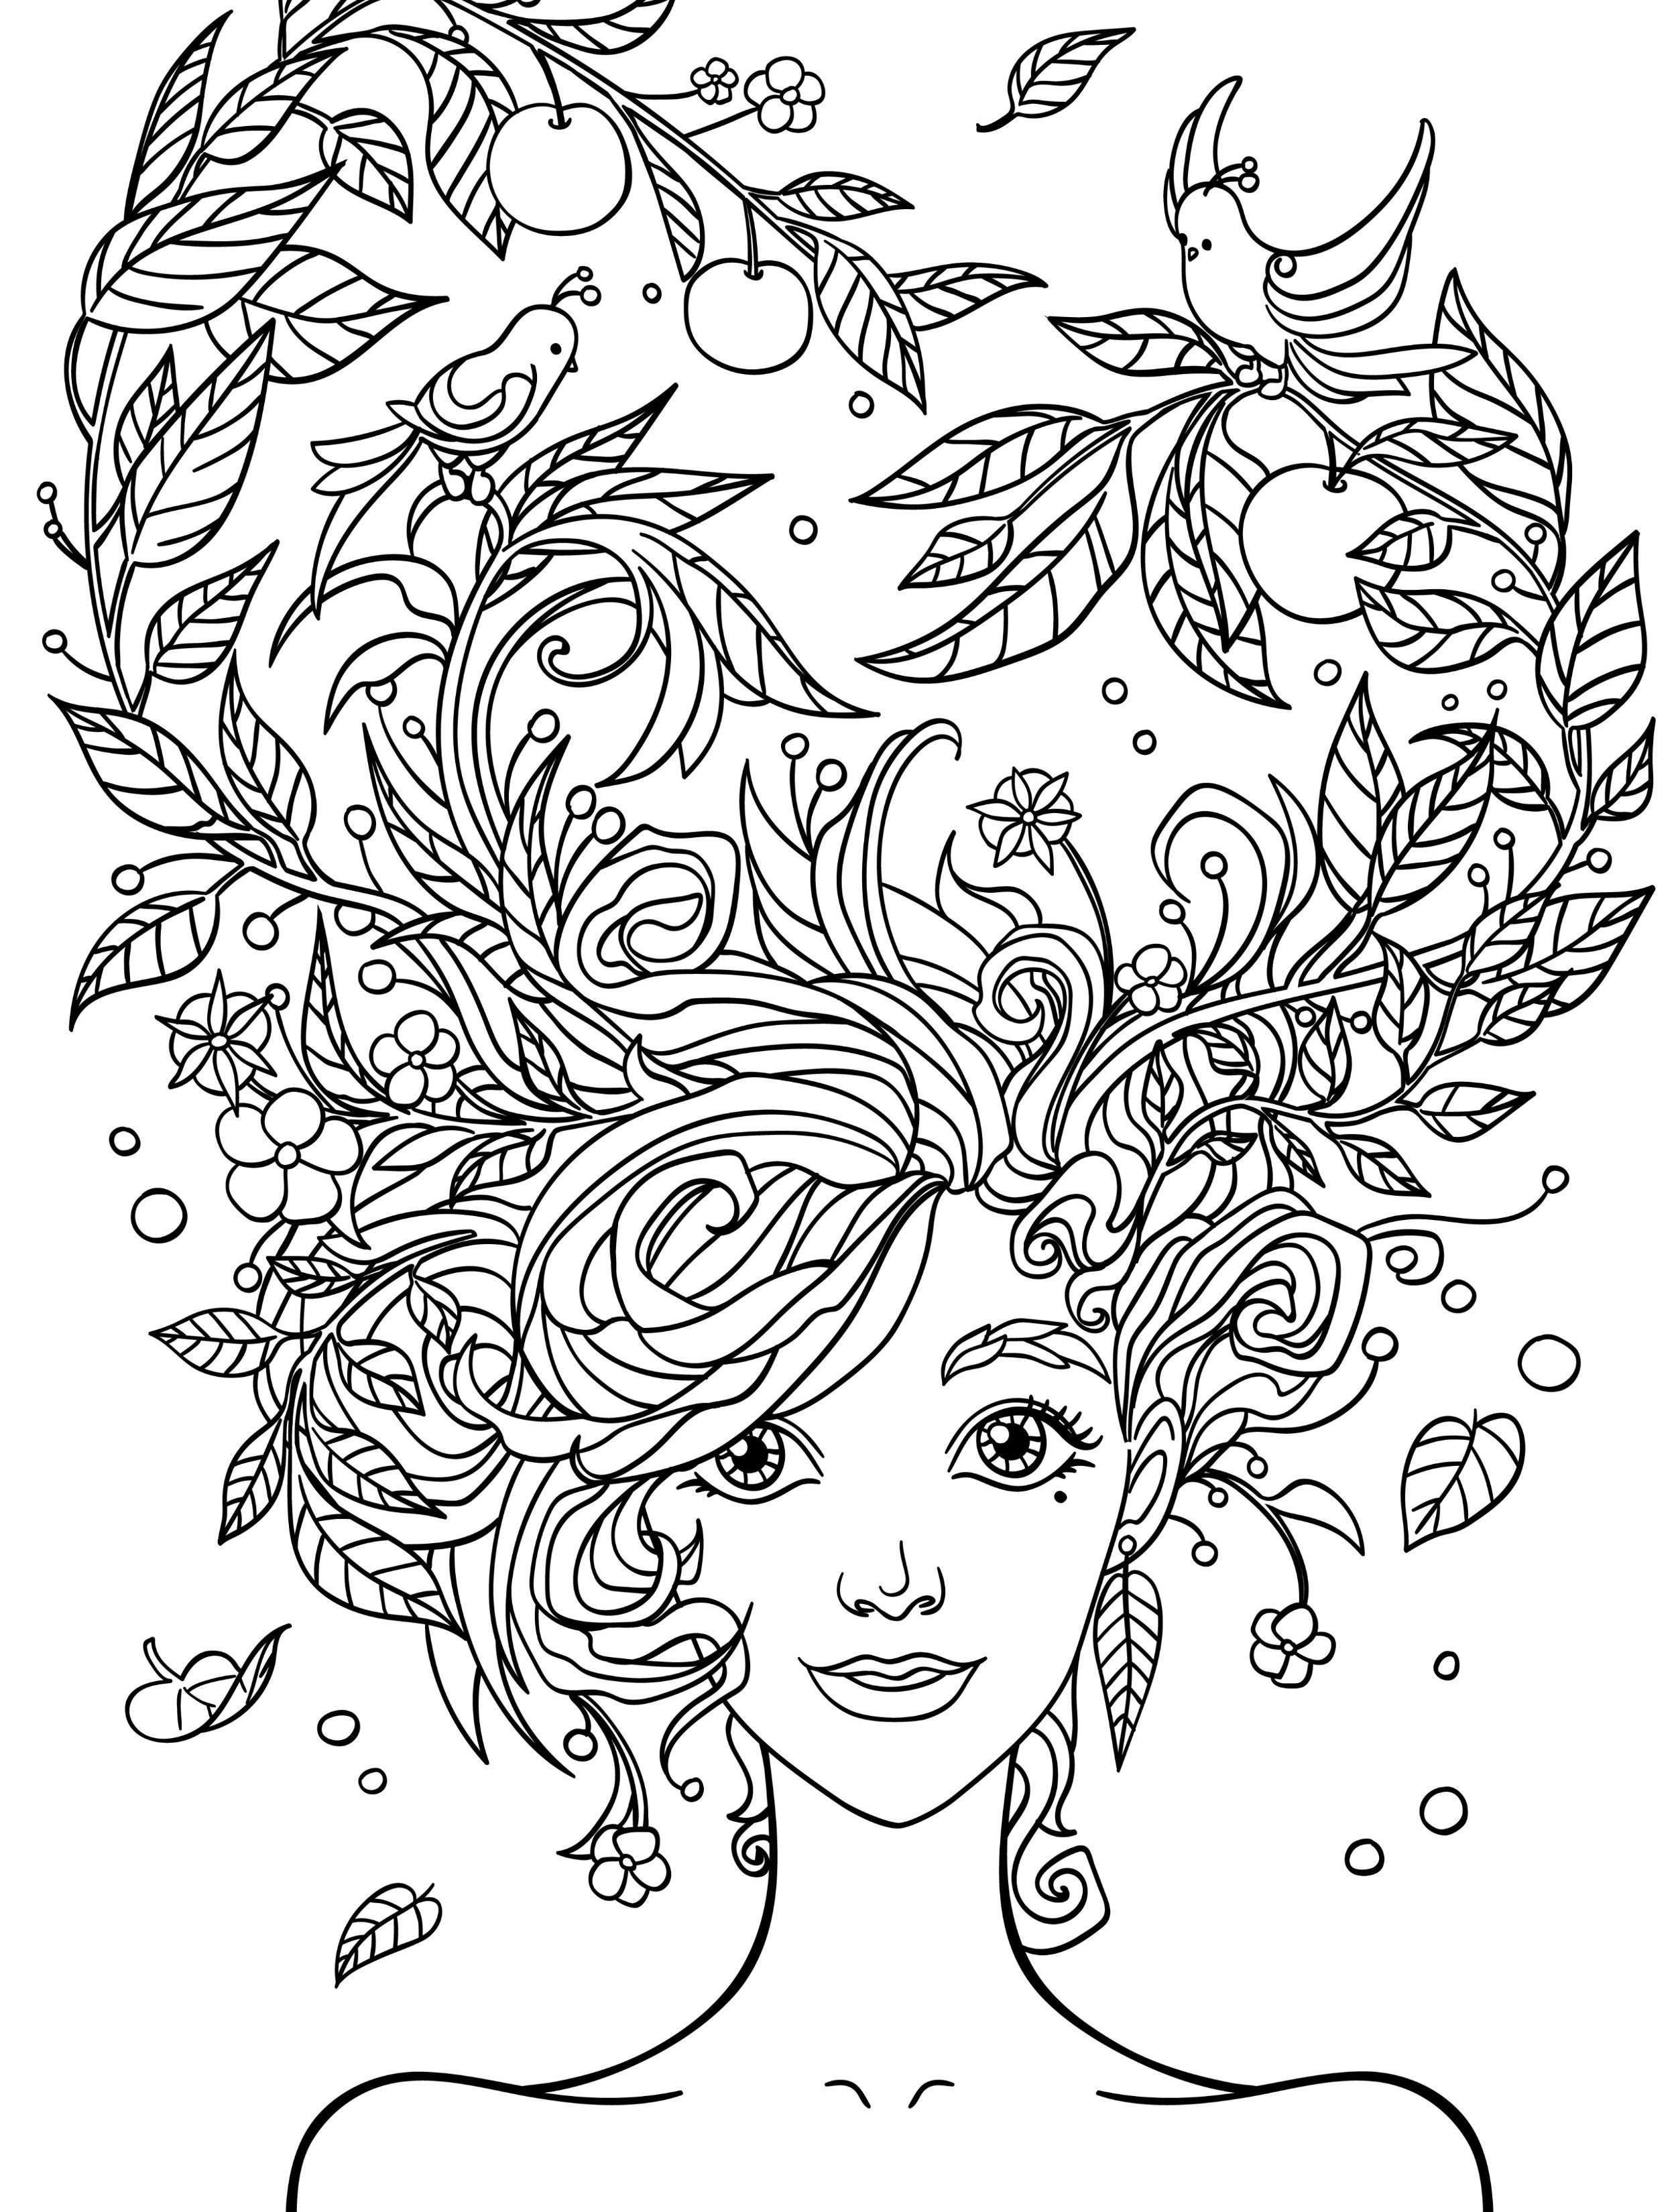 full size coloring pages adults - photo#47